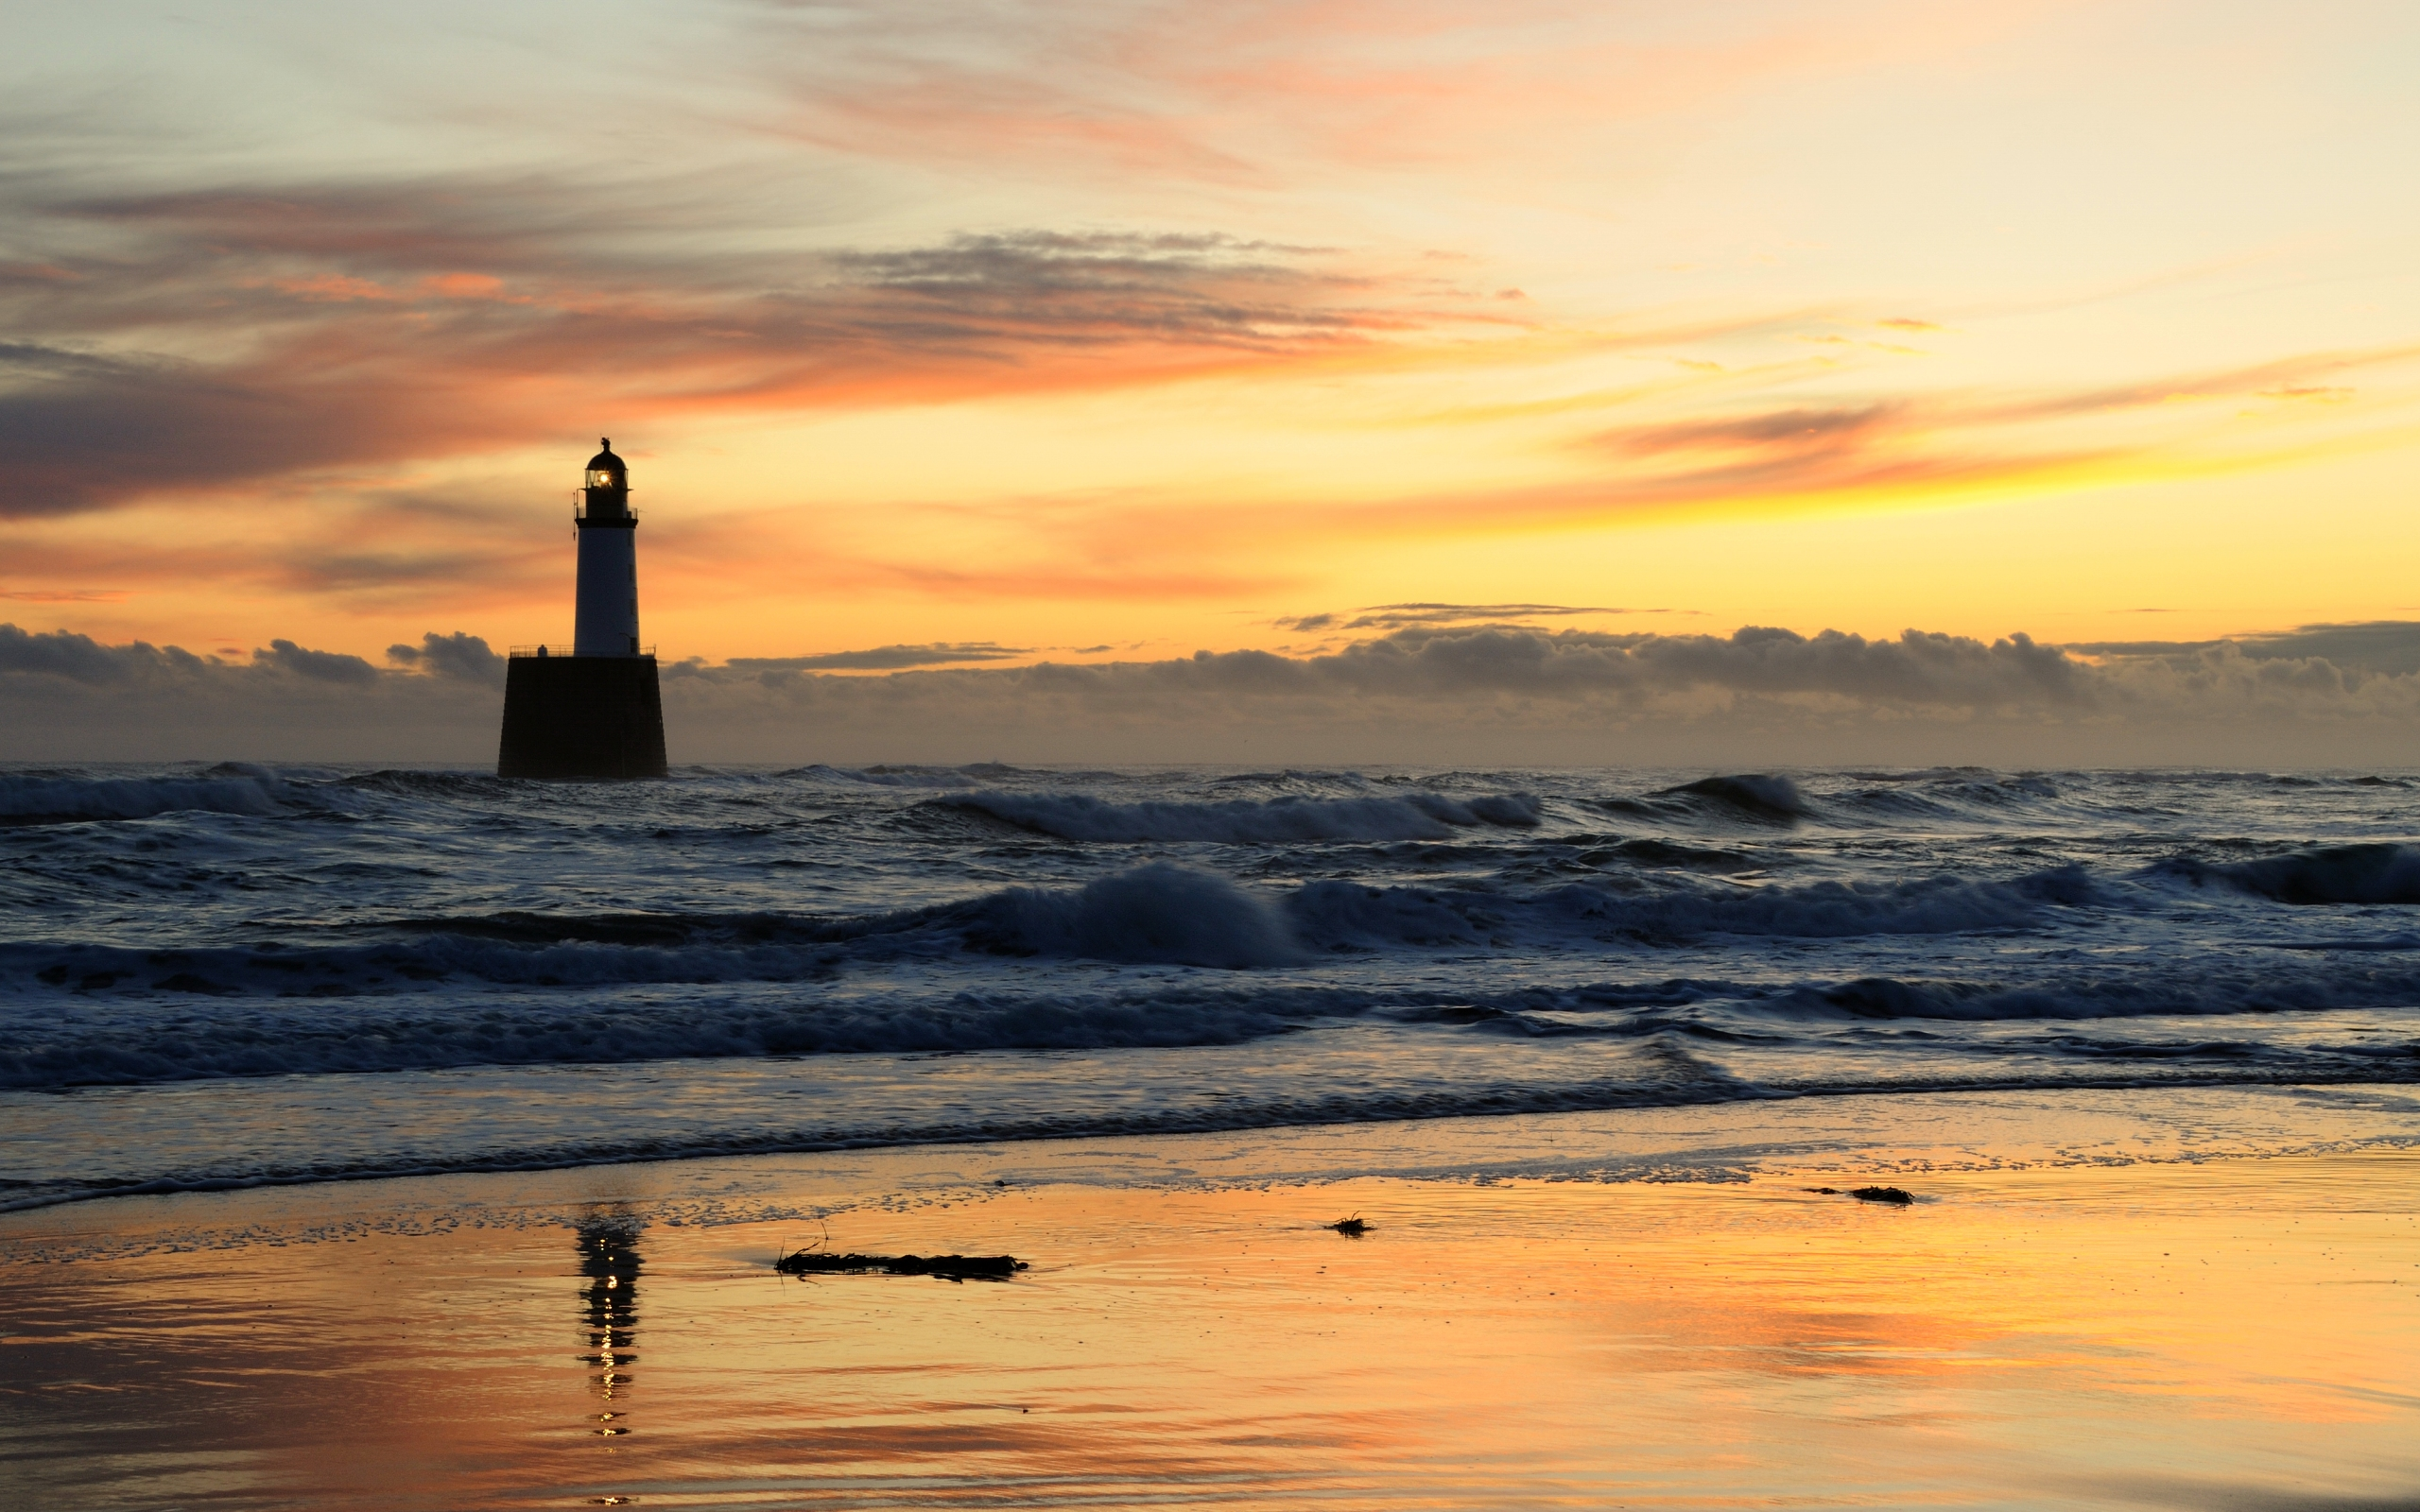 evening, lighthouse, sea, landscape